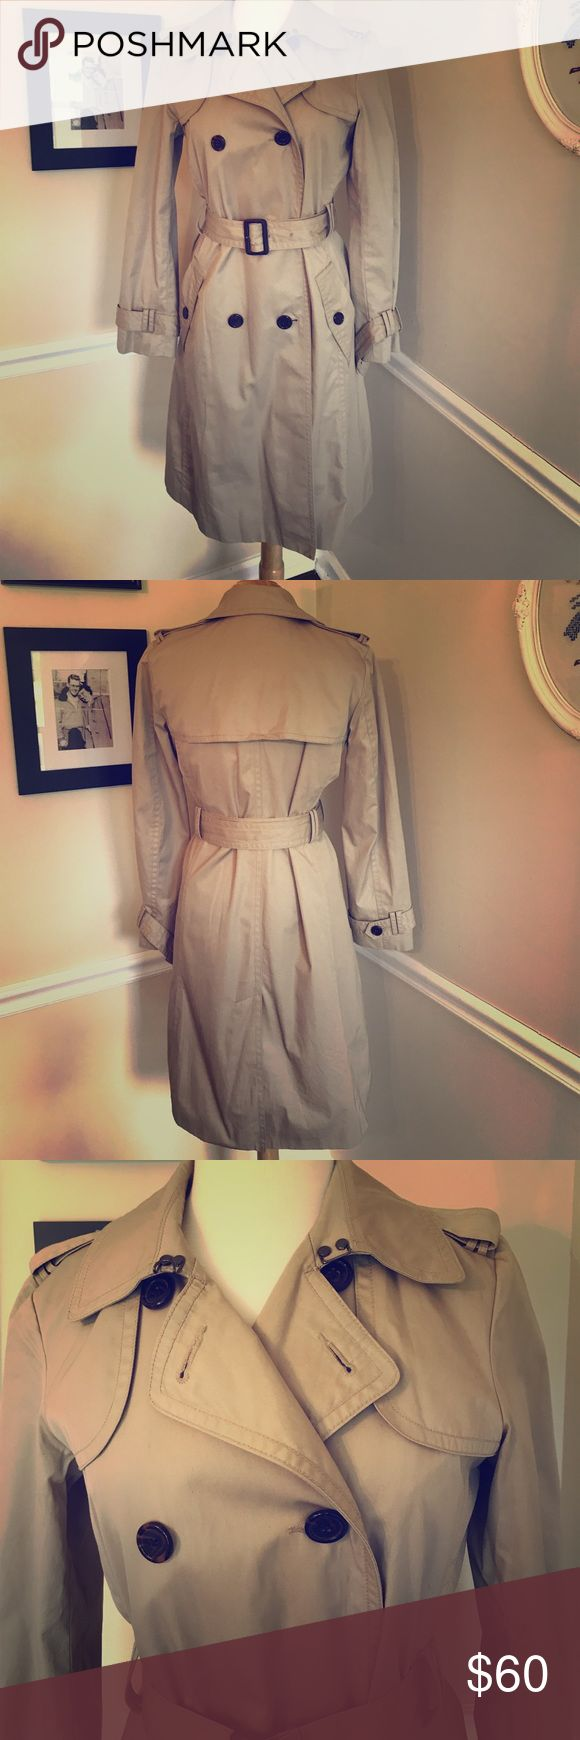 Banana Republic Classic Trench Coat Pre loved but in excellent condition! Banana Republic Classic Trench coat. Cute, classic and timeless style! Perfect addition for your closet! 💕Bundle and save💕 Rain coat. Fall. Career wear. Work Banana Republic Jackets & Coats Trench Coats